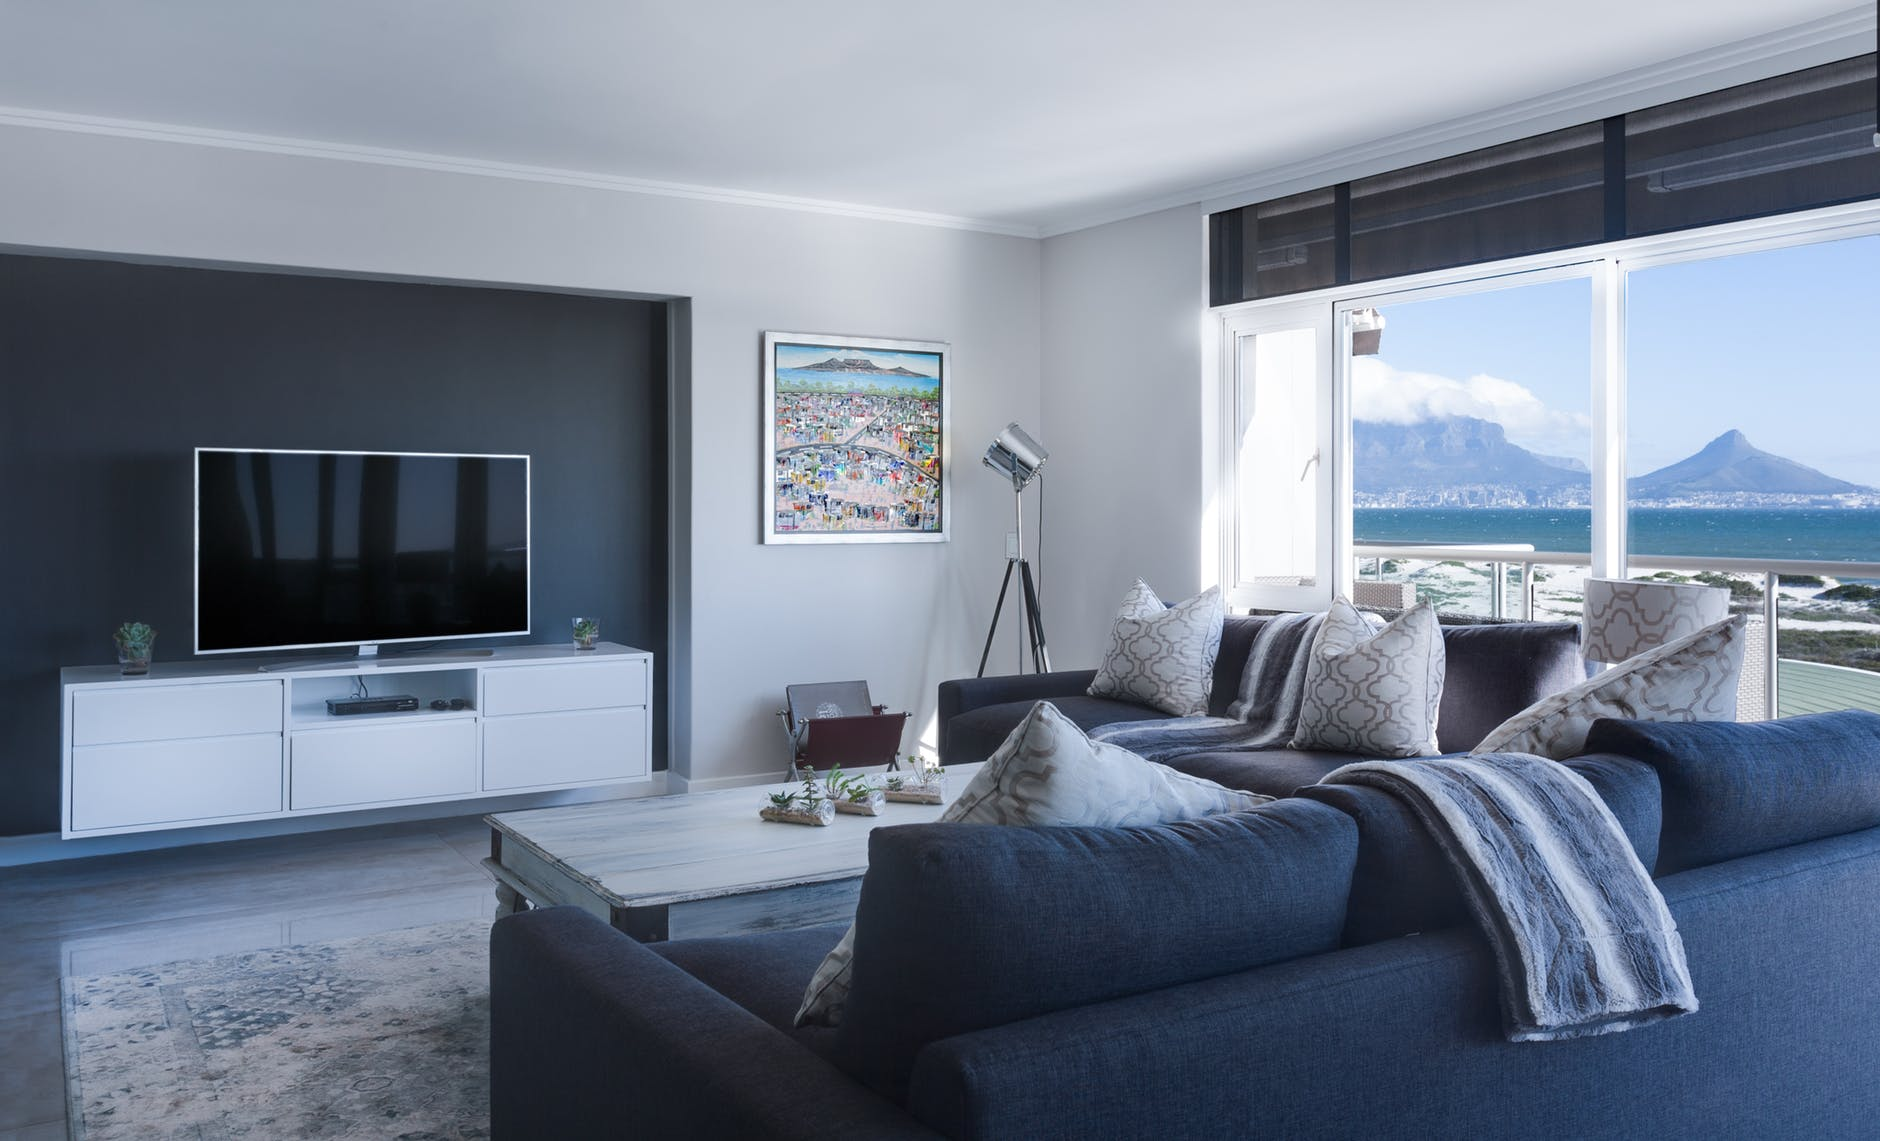 5 Tips on How to Blend TV into the Part of Your Home Decor